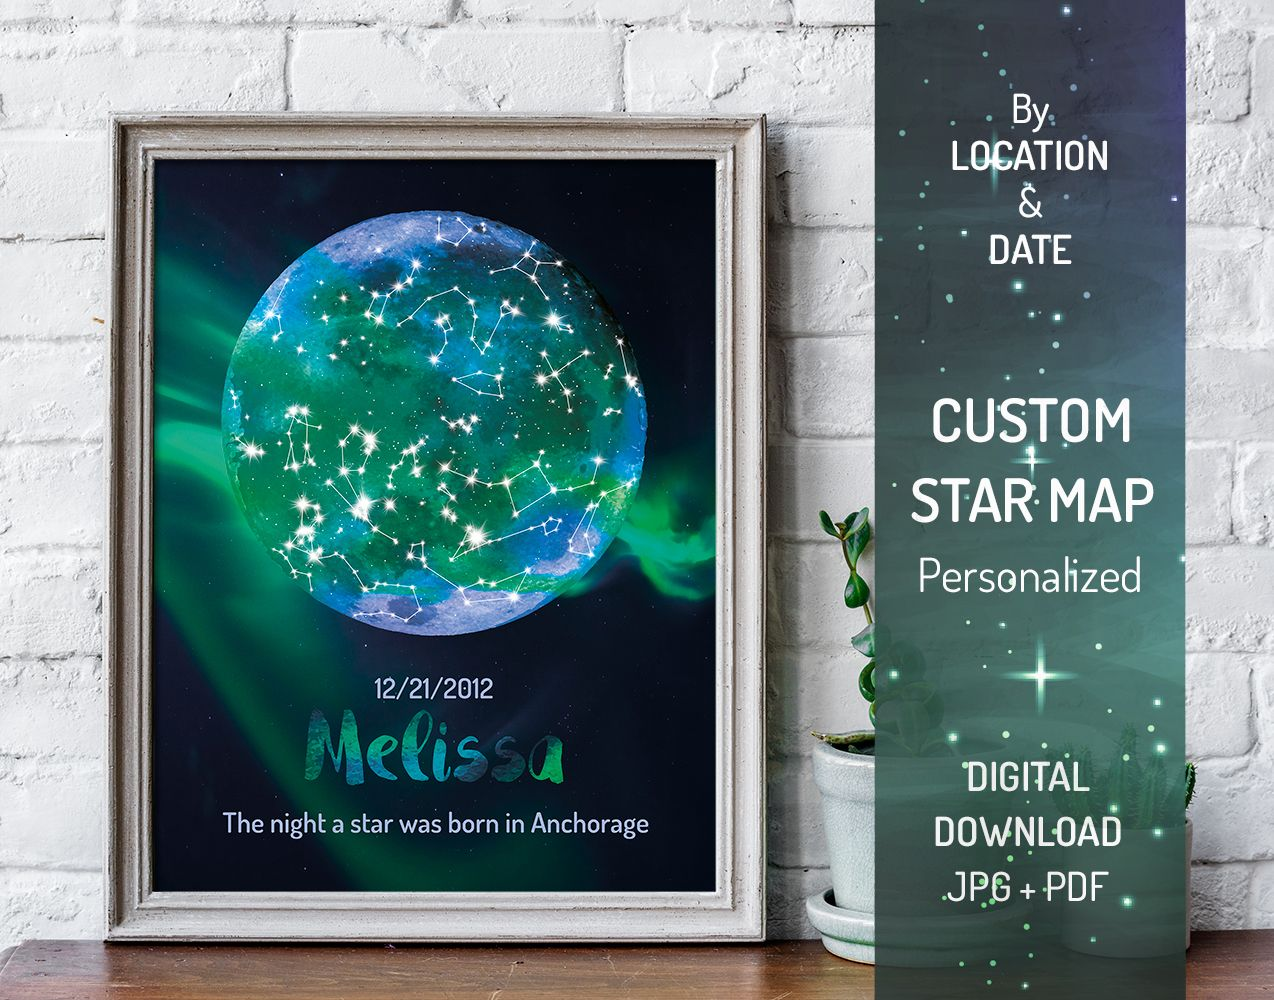 This Night Sky Chart Is Personalized Special For Your Occasion Whether Its Birthday Anniversary Wedding Or St Valentines Day